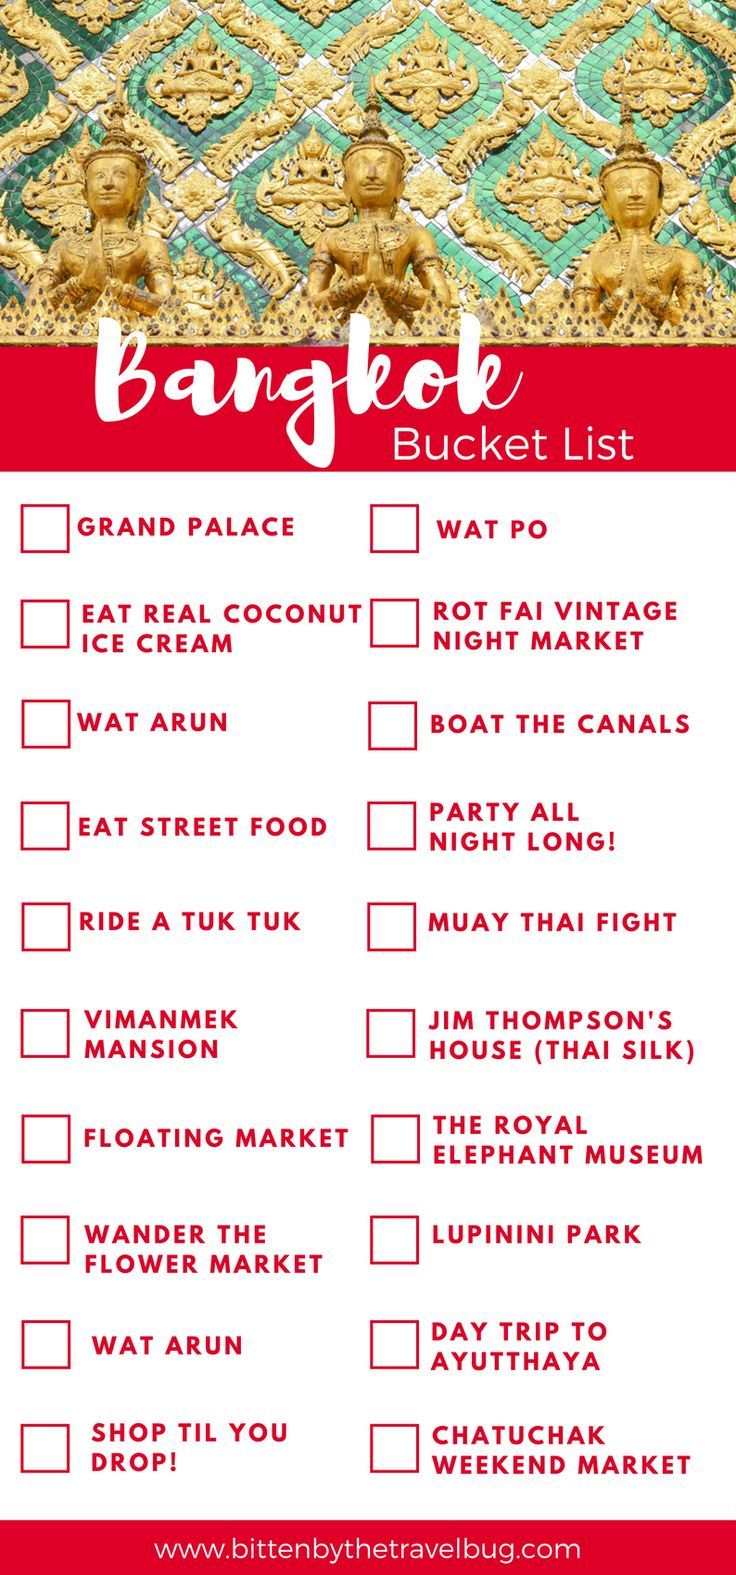 Travelling to Bangkok and not sure what to do? Check out this Bangkok Bucket List with 20 great ideas about what to do in Bangkok for first time visitors! | #Bangkok #Thailand #Asia |